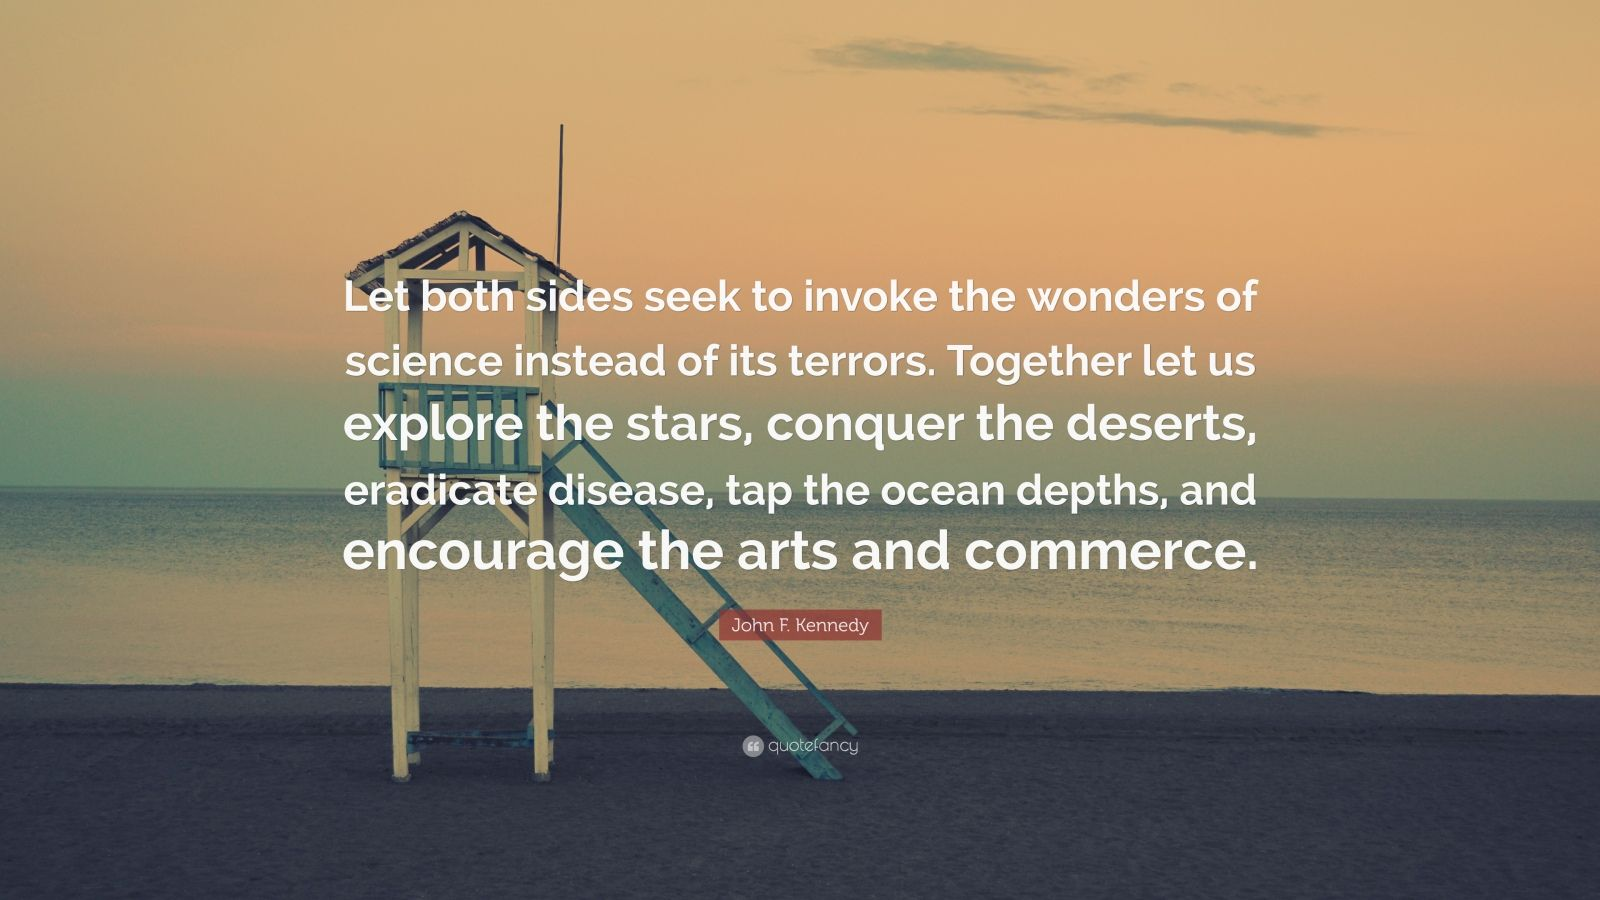 "John F. Kennedy Quote: ""Let both sides seek to invoke the wonders of science instead of its terrors. Together let us explore the stars, conquer the deserts, eradicate disease, tap the ocean depths, and encourage the arts and commerce."""